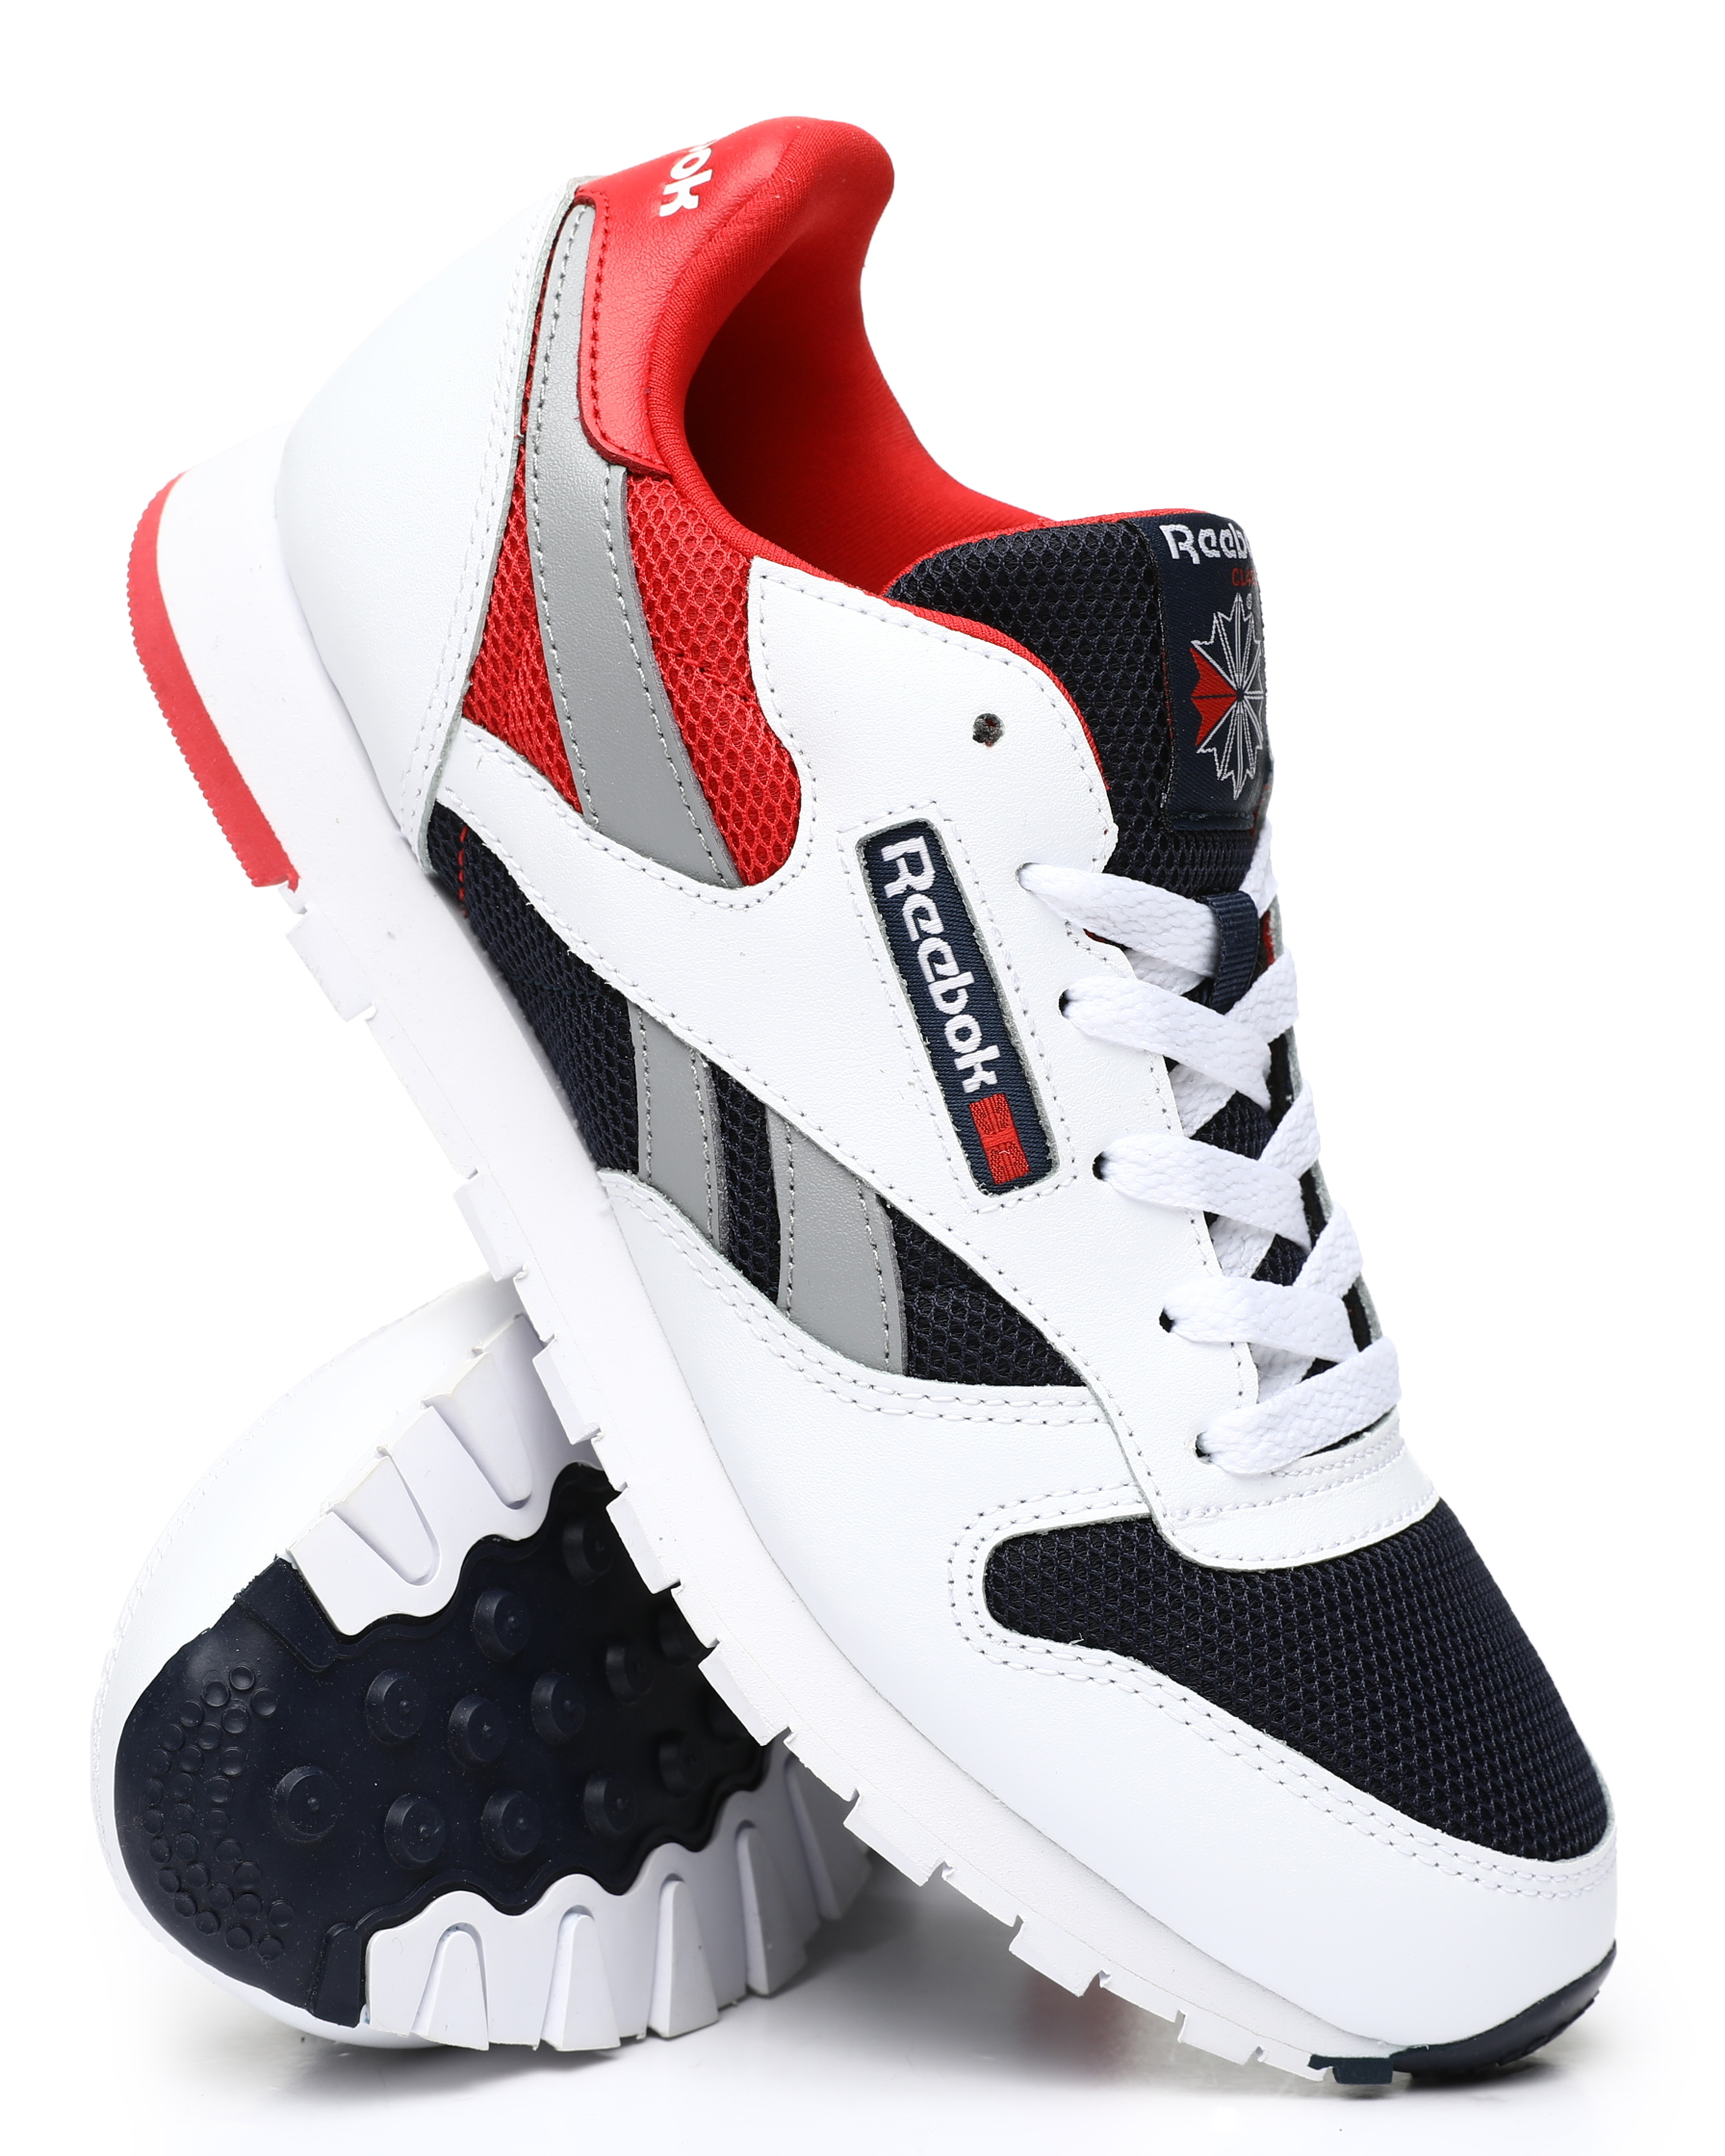 CL Leather Color Block Sneakers (3.5-7